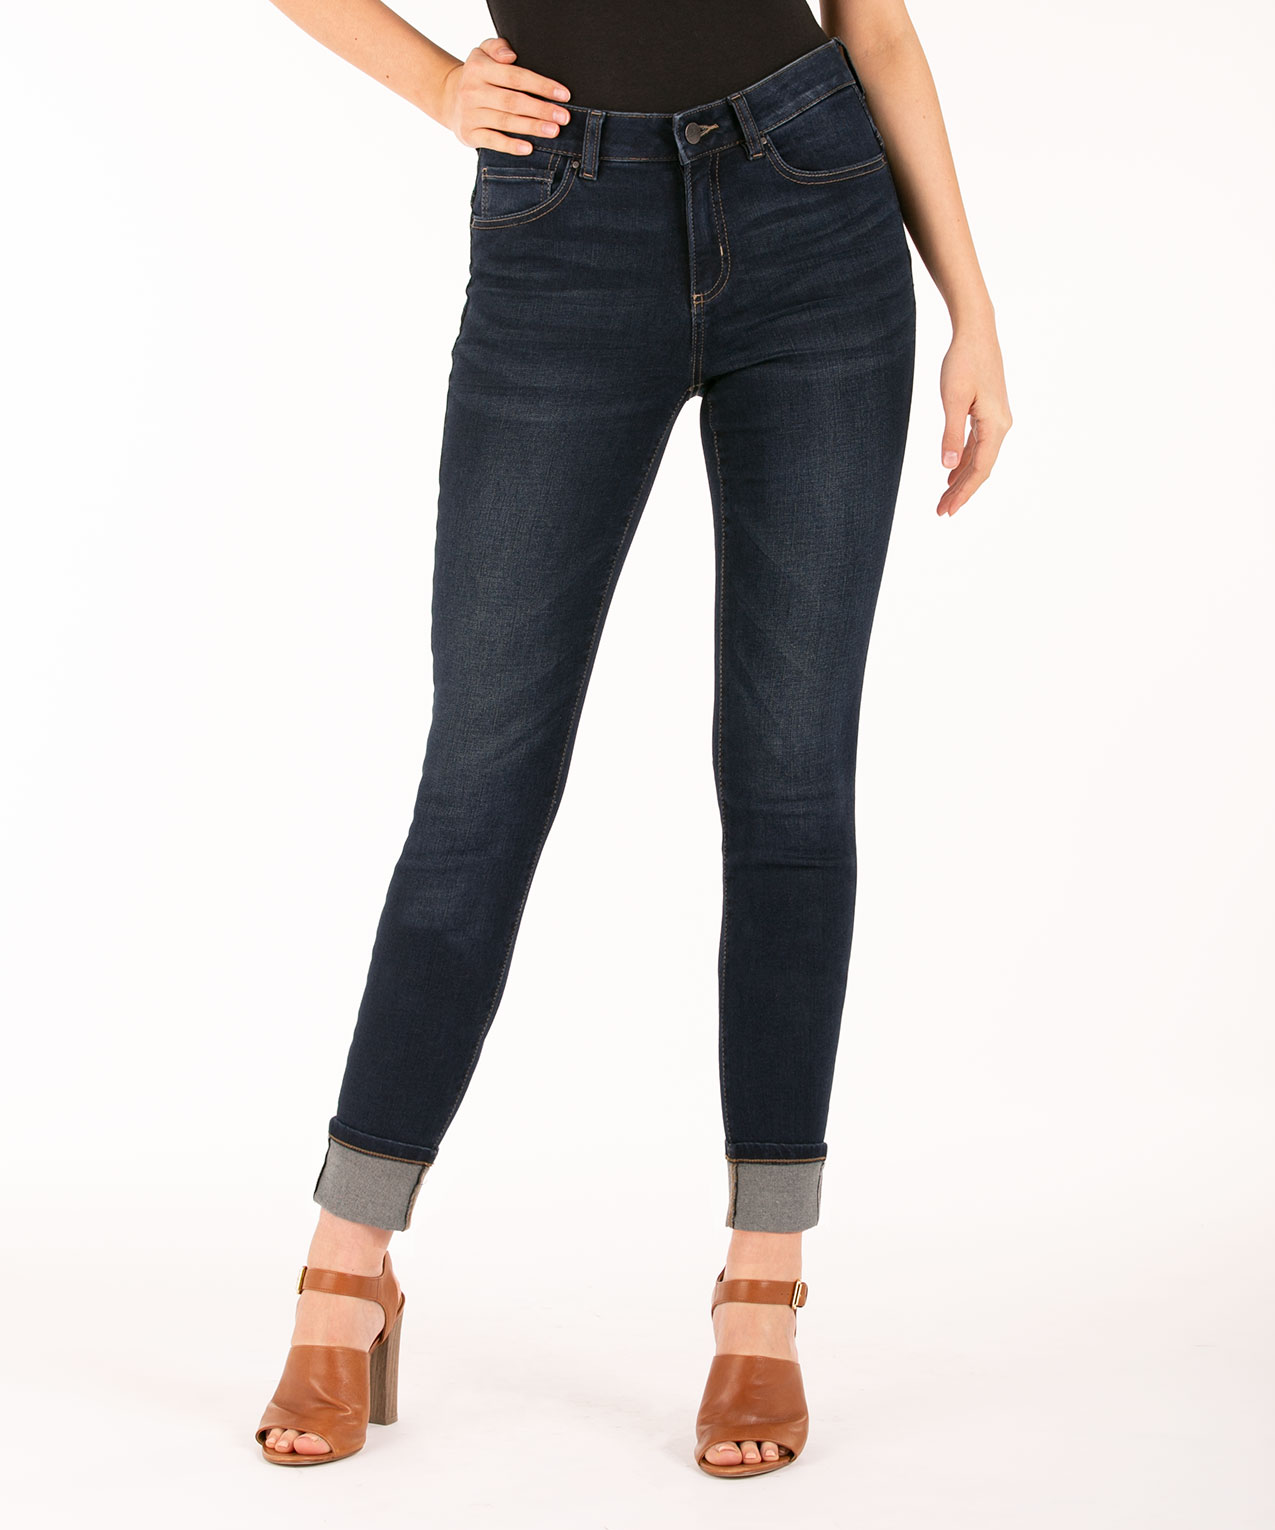 Cuffed Dark Wash Ankle Jean, Dark Wash, hi-res